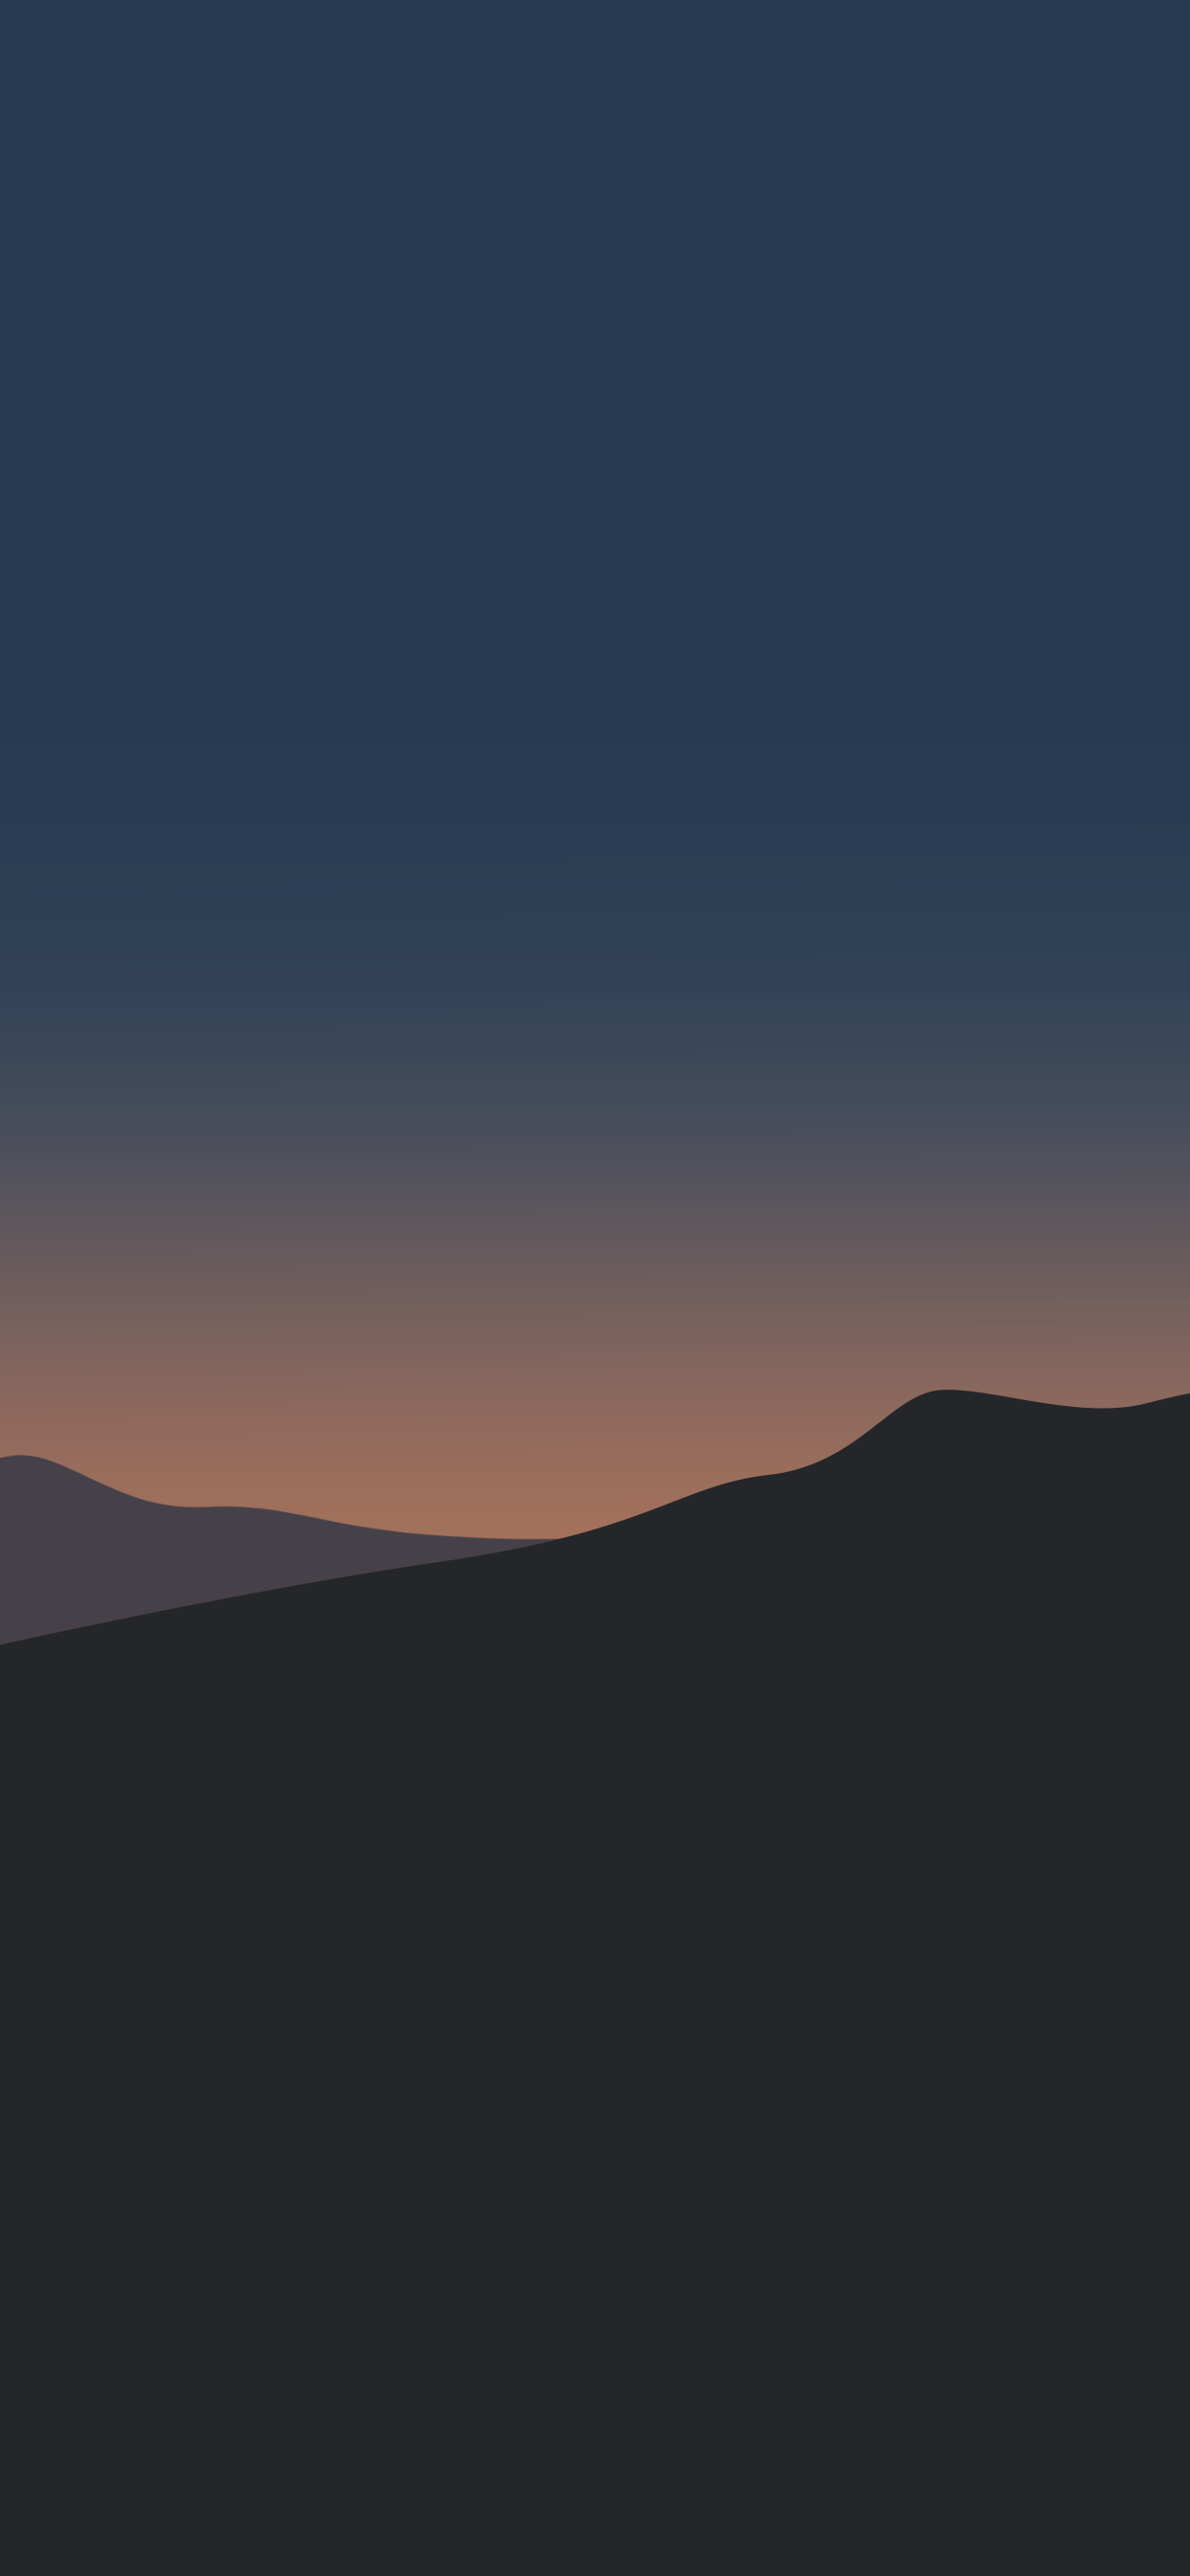 iPhone wallpaper illustration sunset Illustration